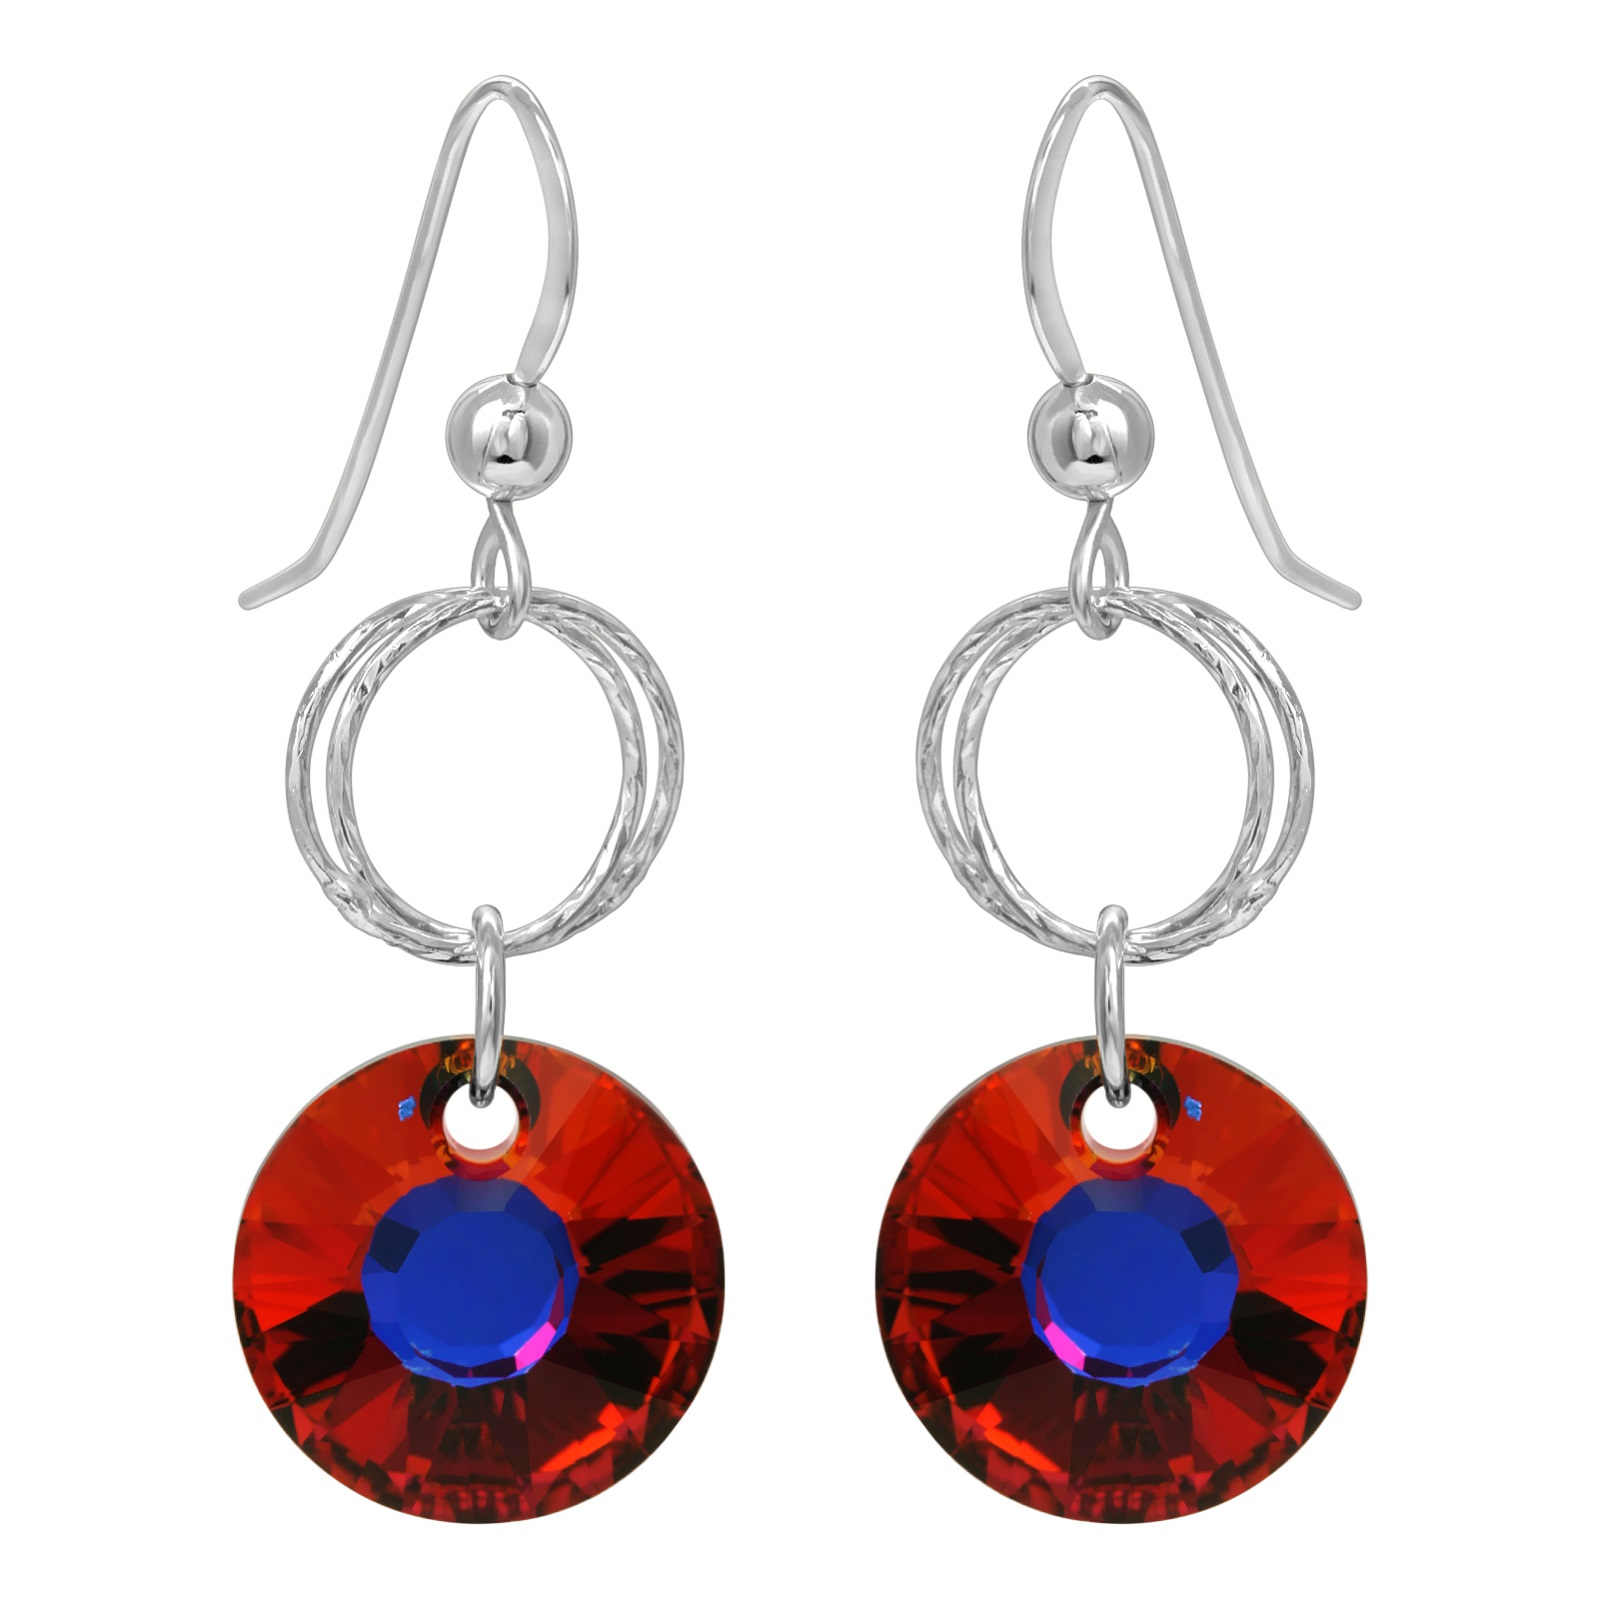 Double Diamond Cut Crystal Earrings - Volcano